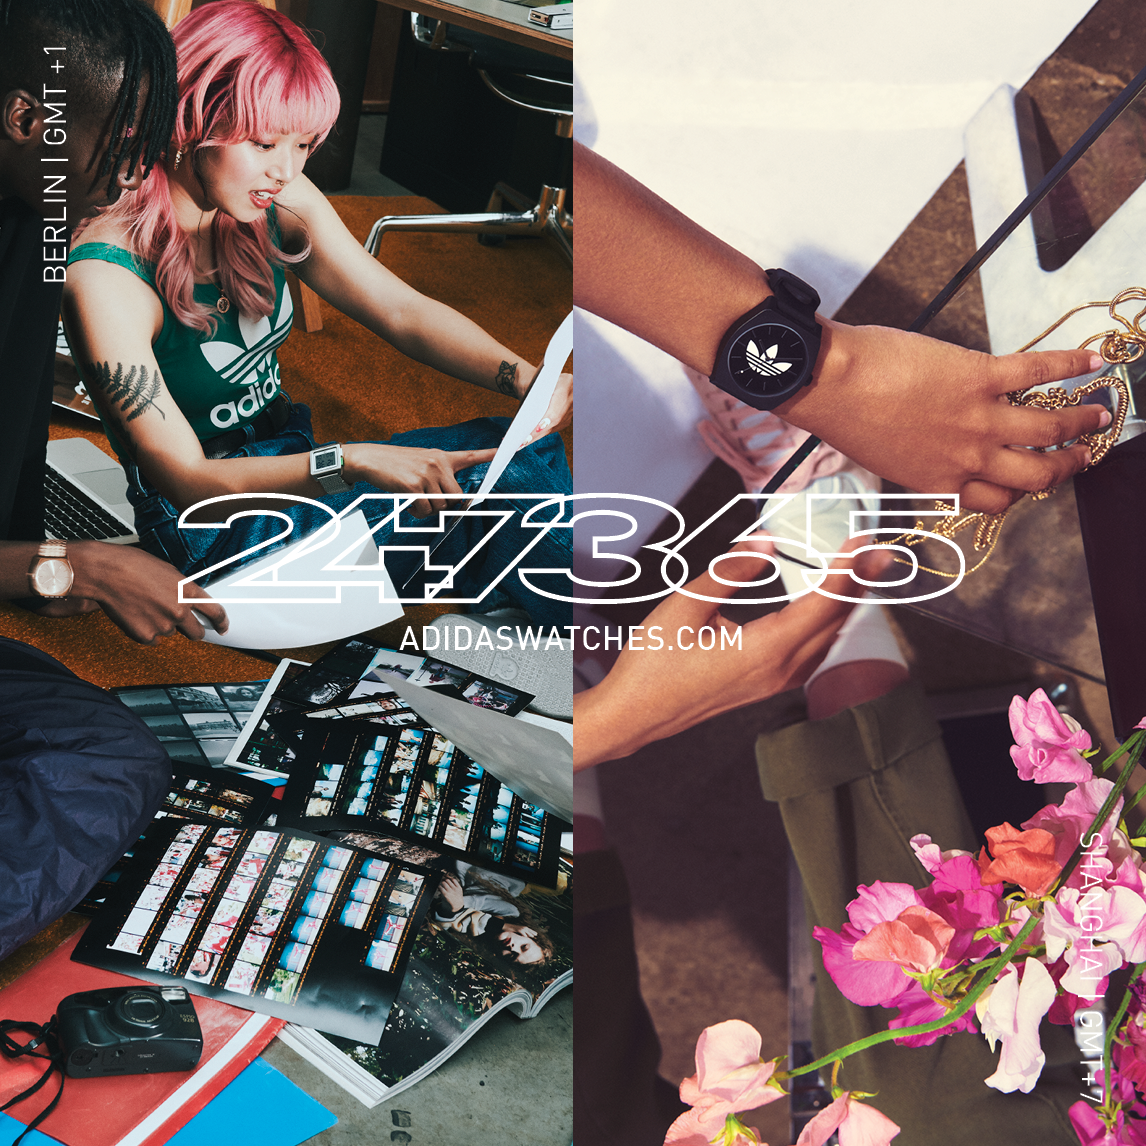 adidas Watches POPUP STORE